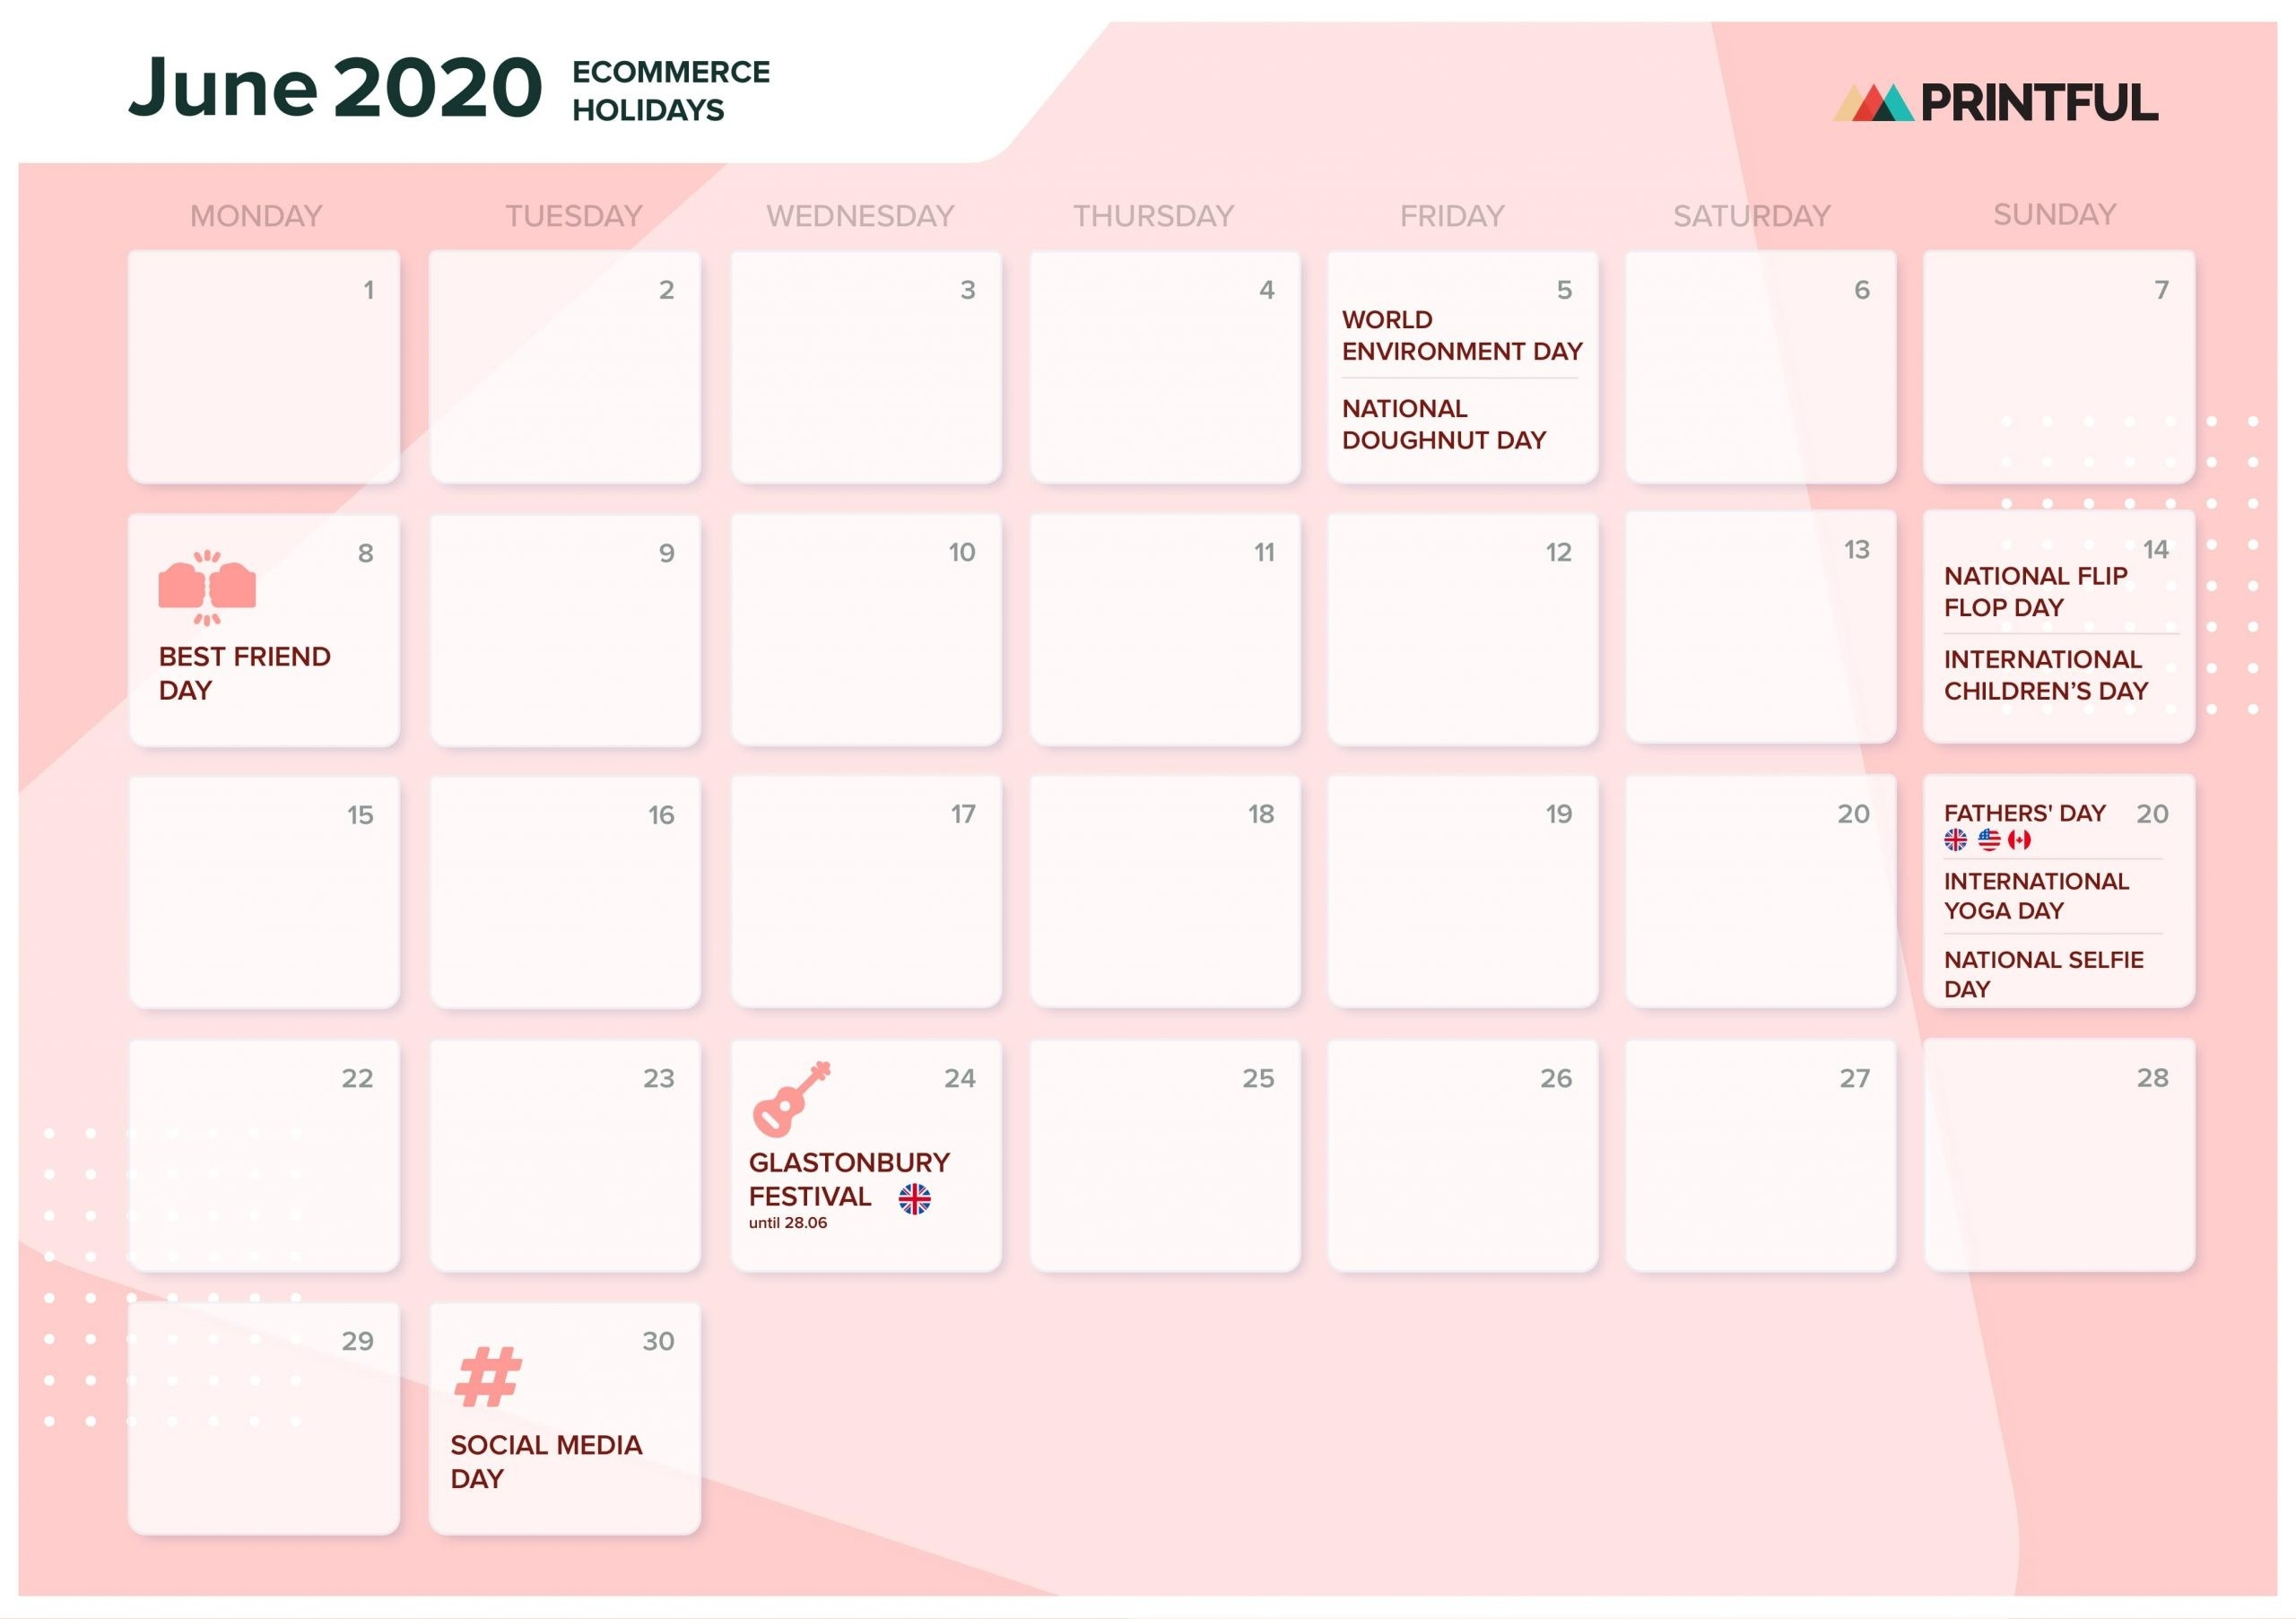 The Ultimate 2020 Ecommerce Holiday Marketing Calendar-National Food Holidays In Usa 2020